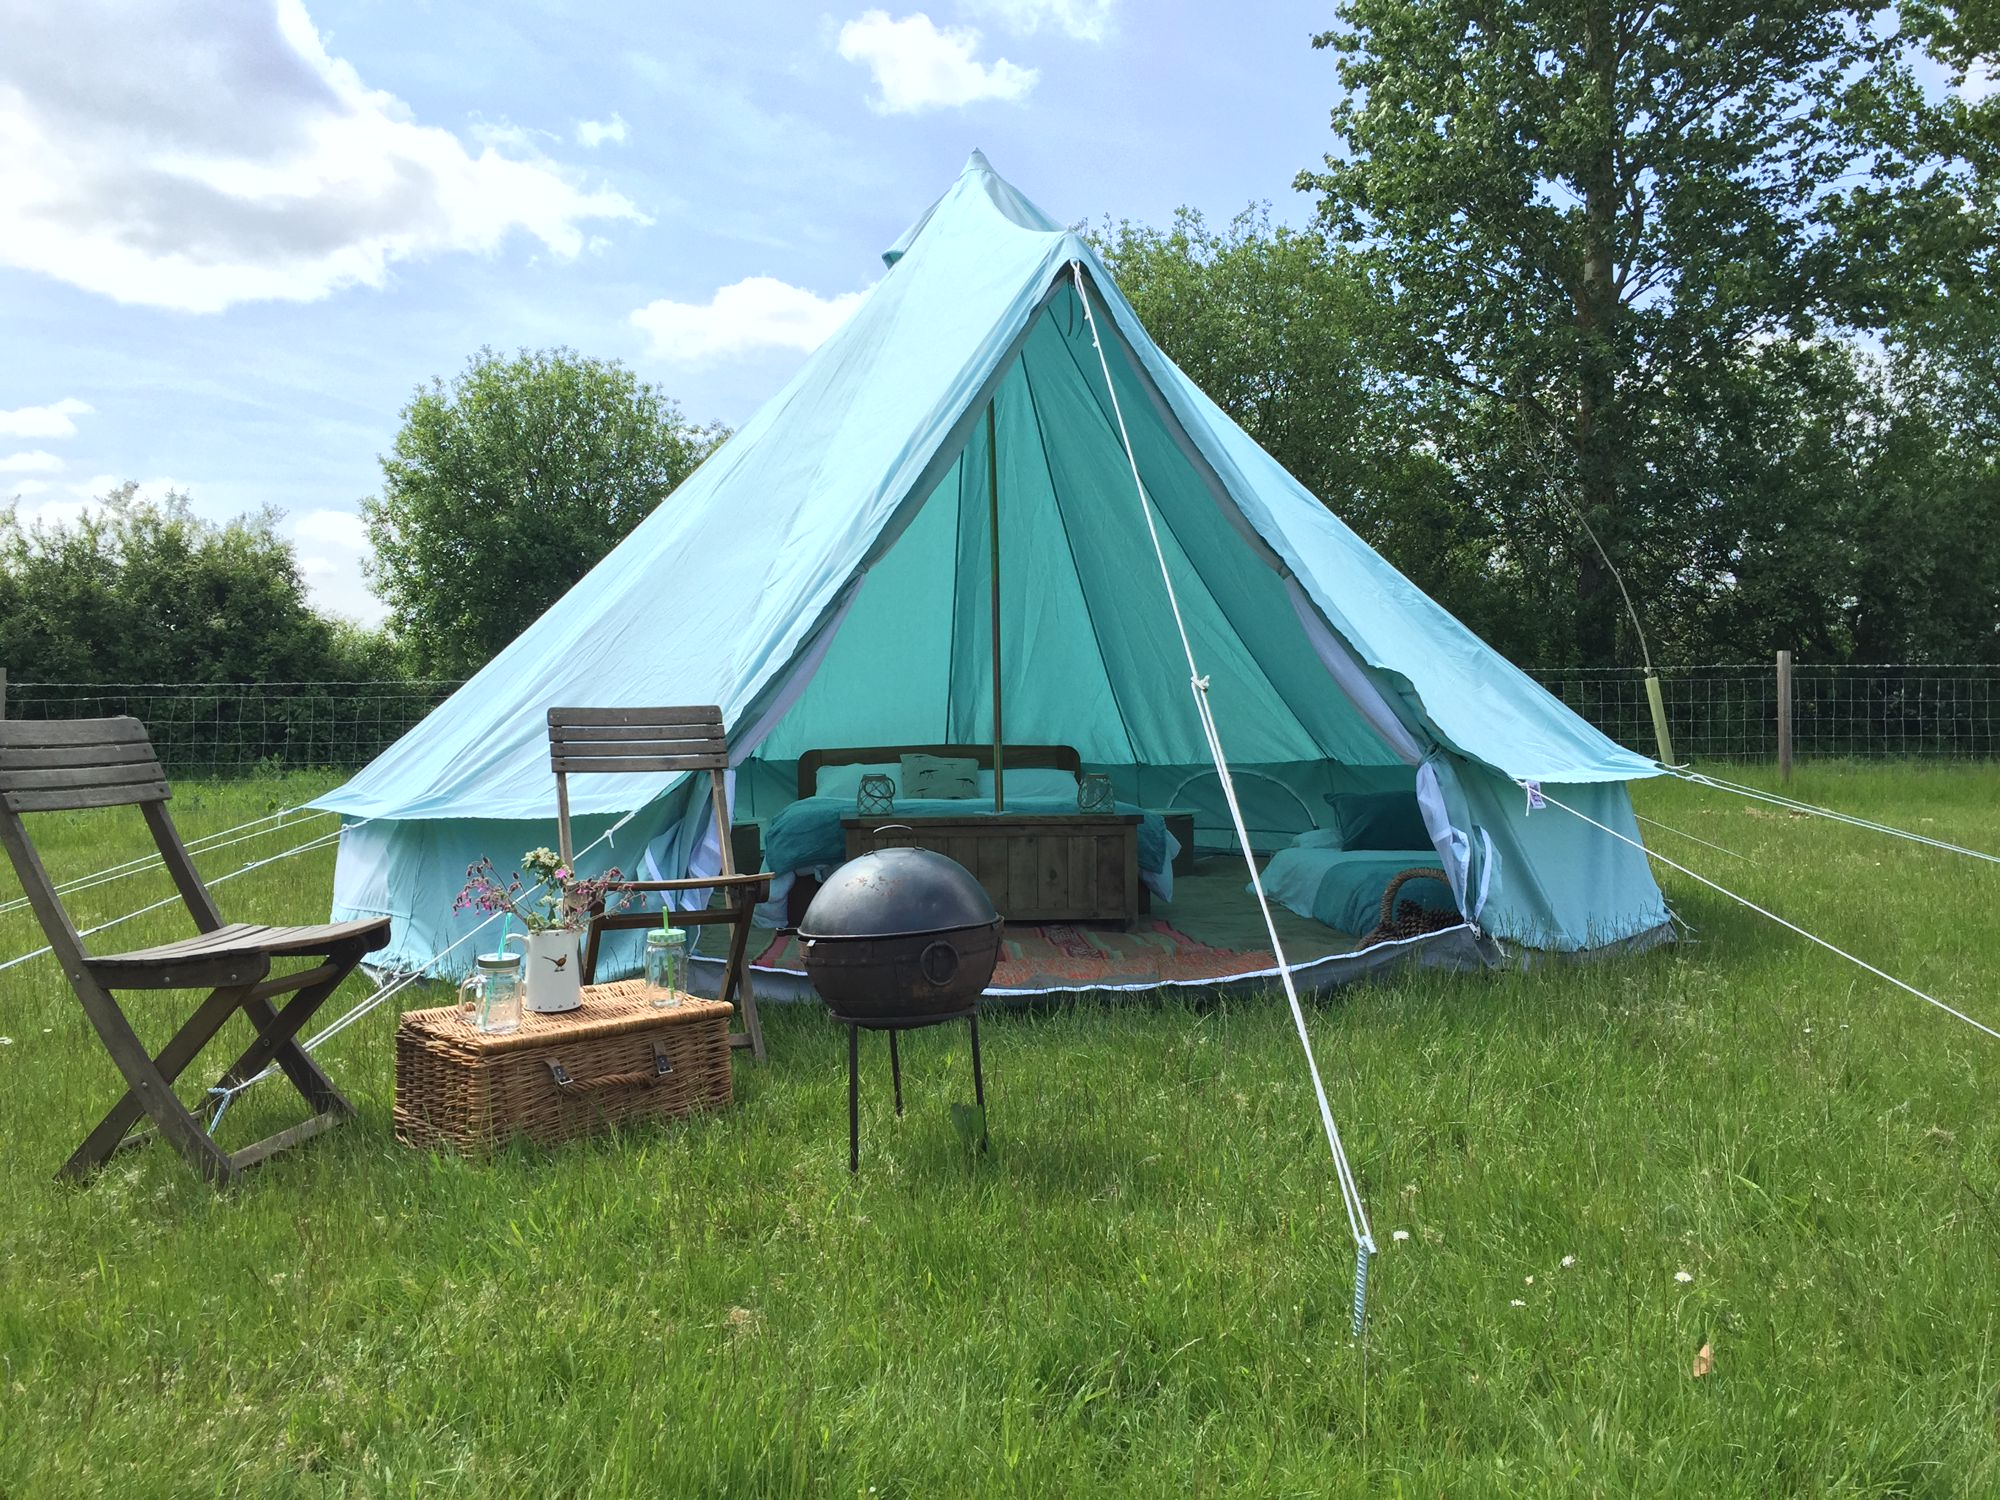 Bell tent glamping on a farm near the Blackwater Estuary in Essex.